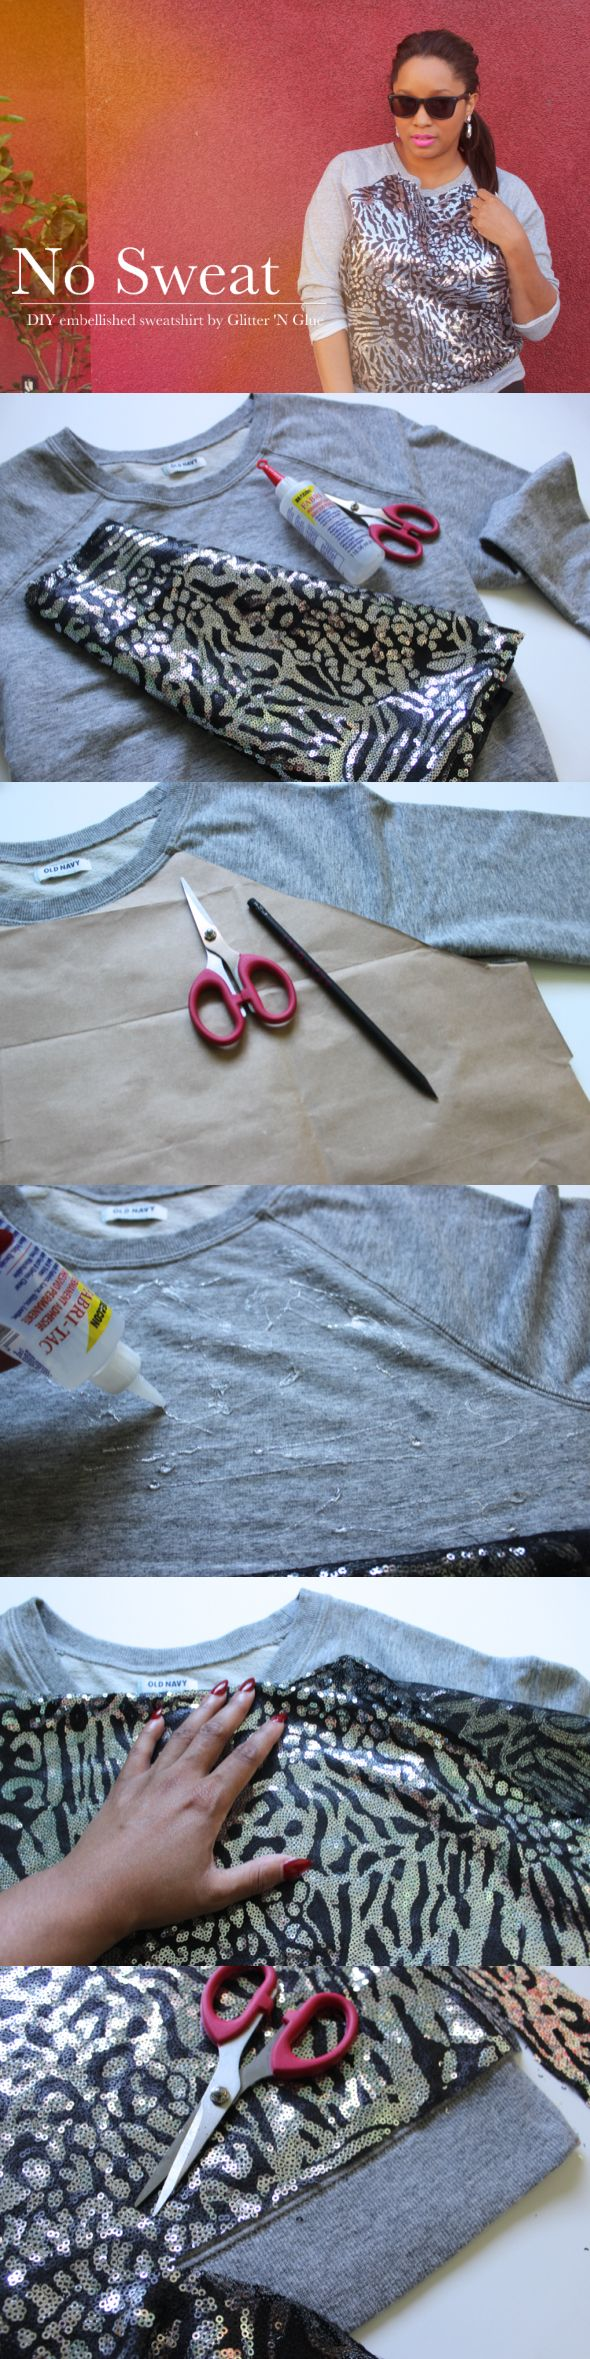 Embellished Sweatshirt DIY - 12 Fashionable DIY Ideas